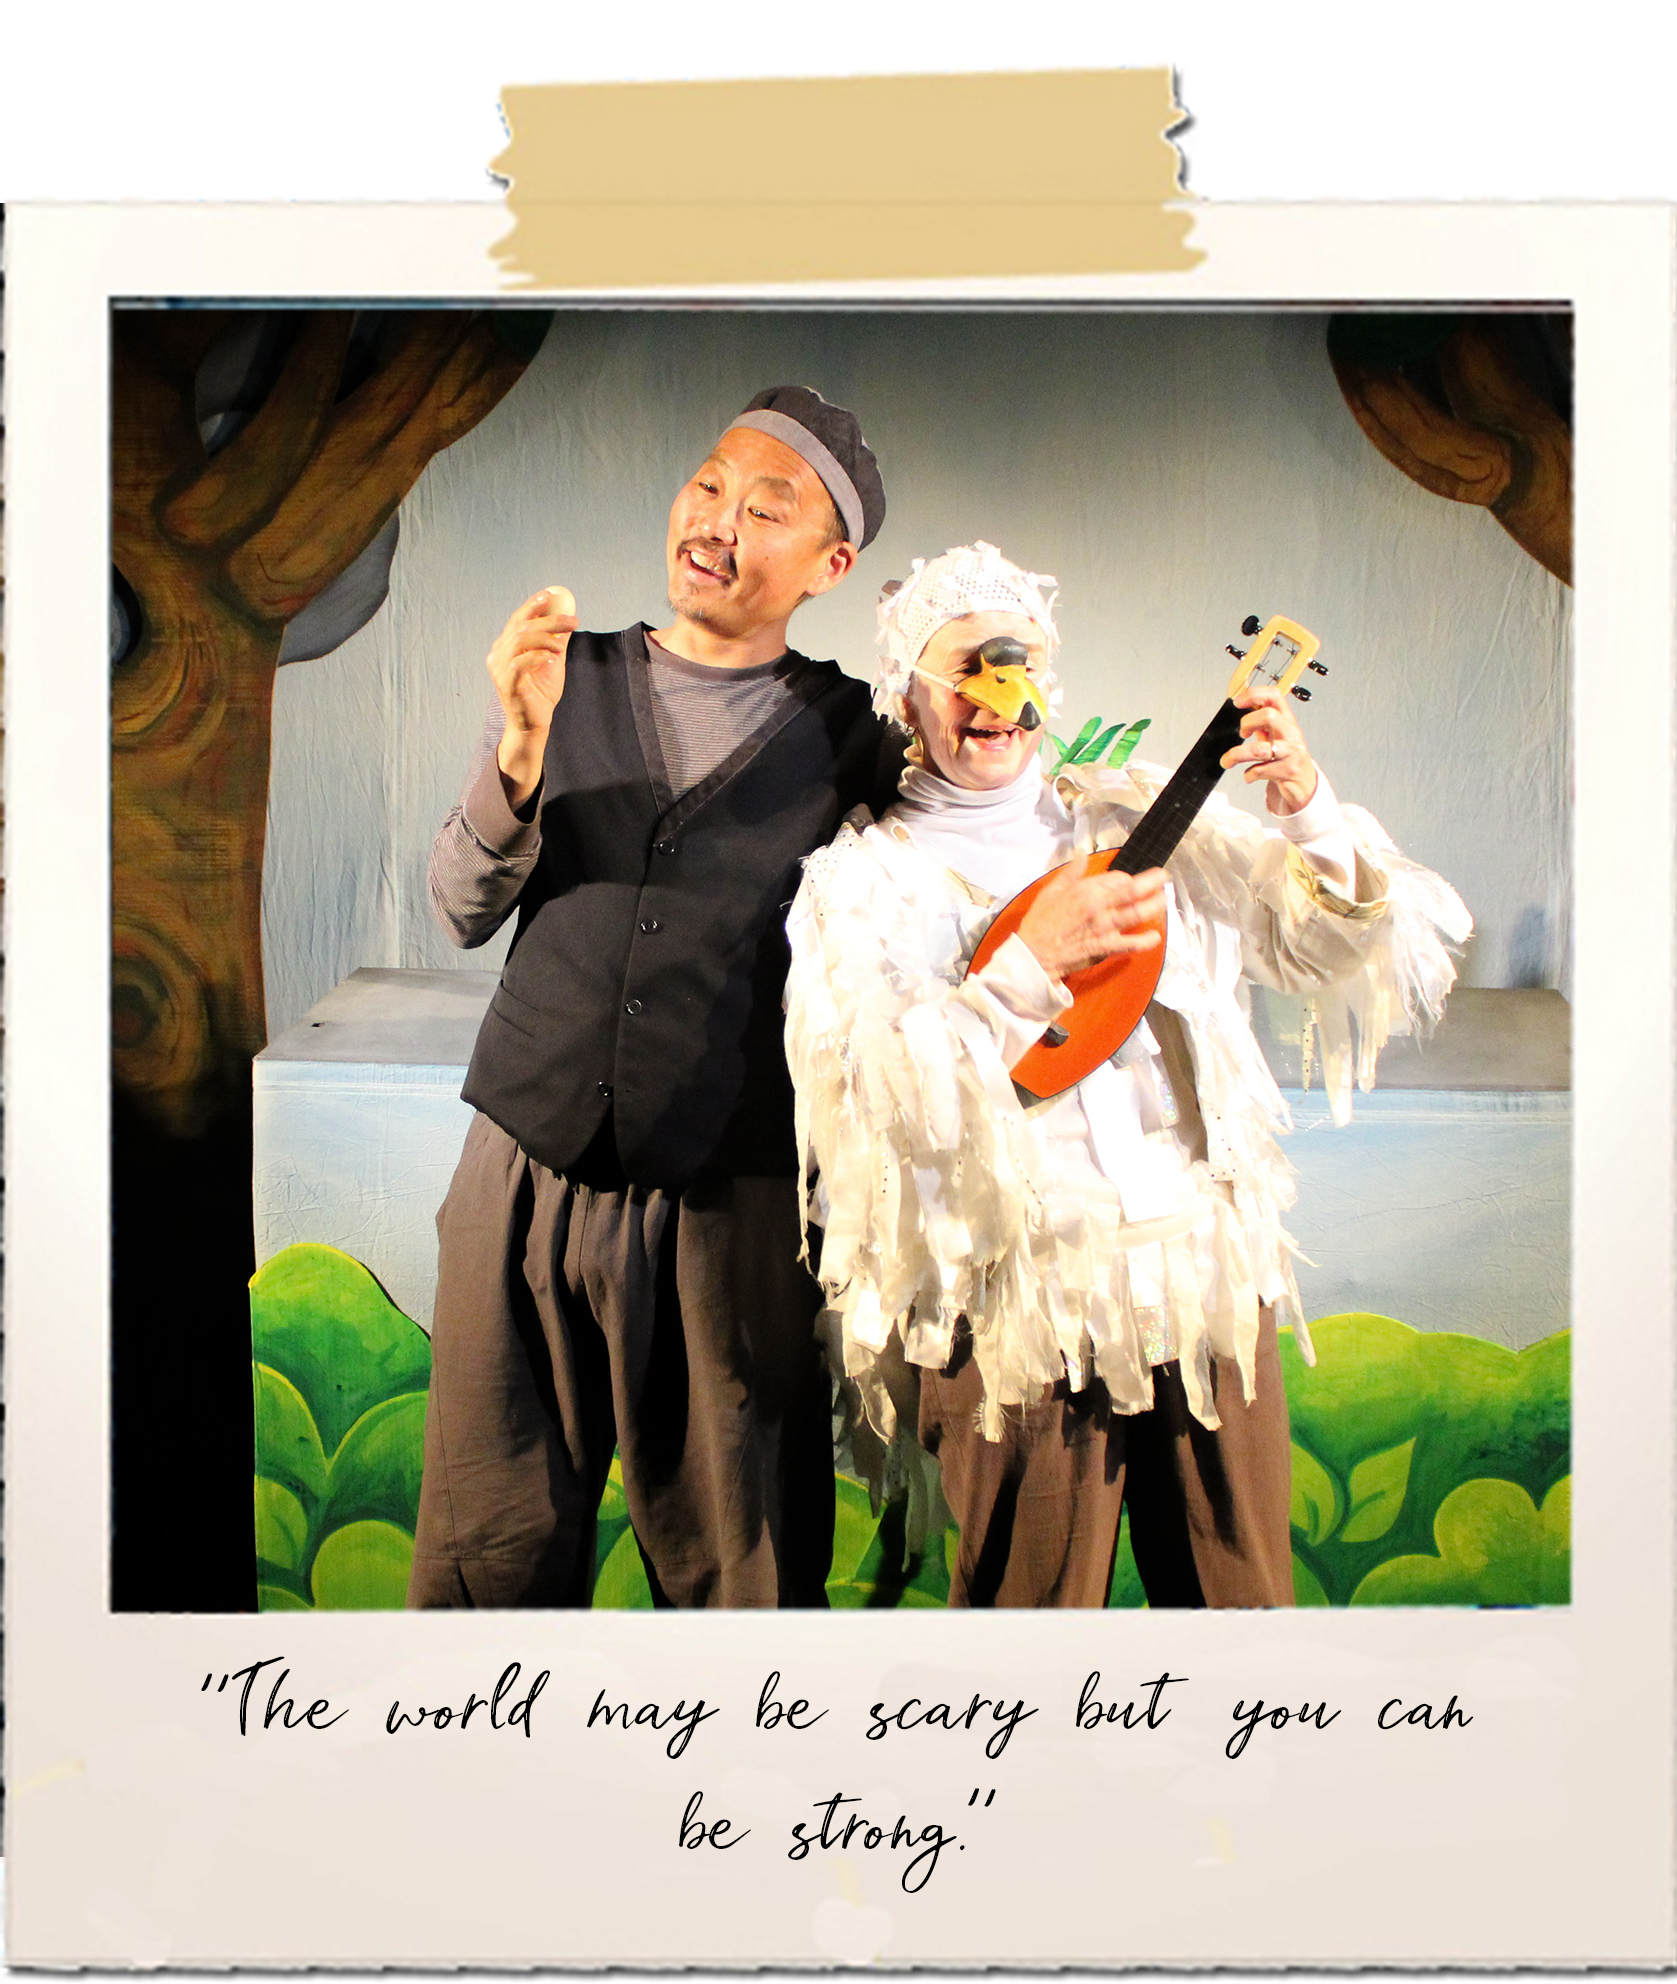 A man and a woman dressed as a swan sing together